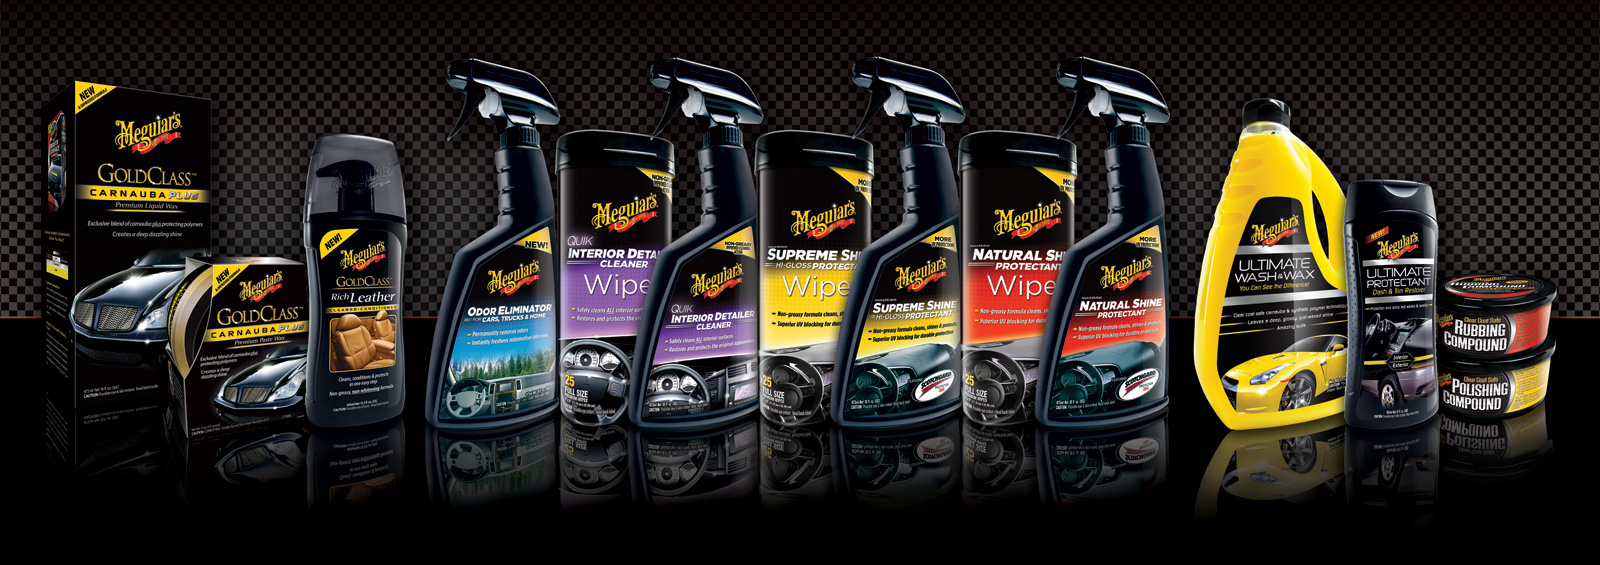 meguiars-new-products